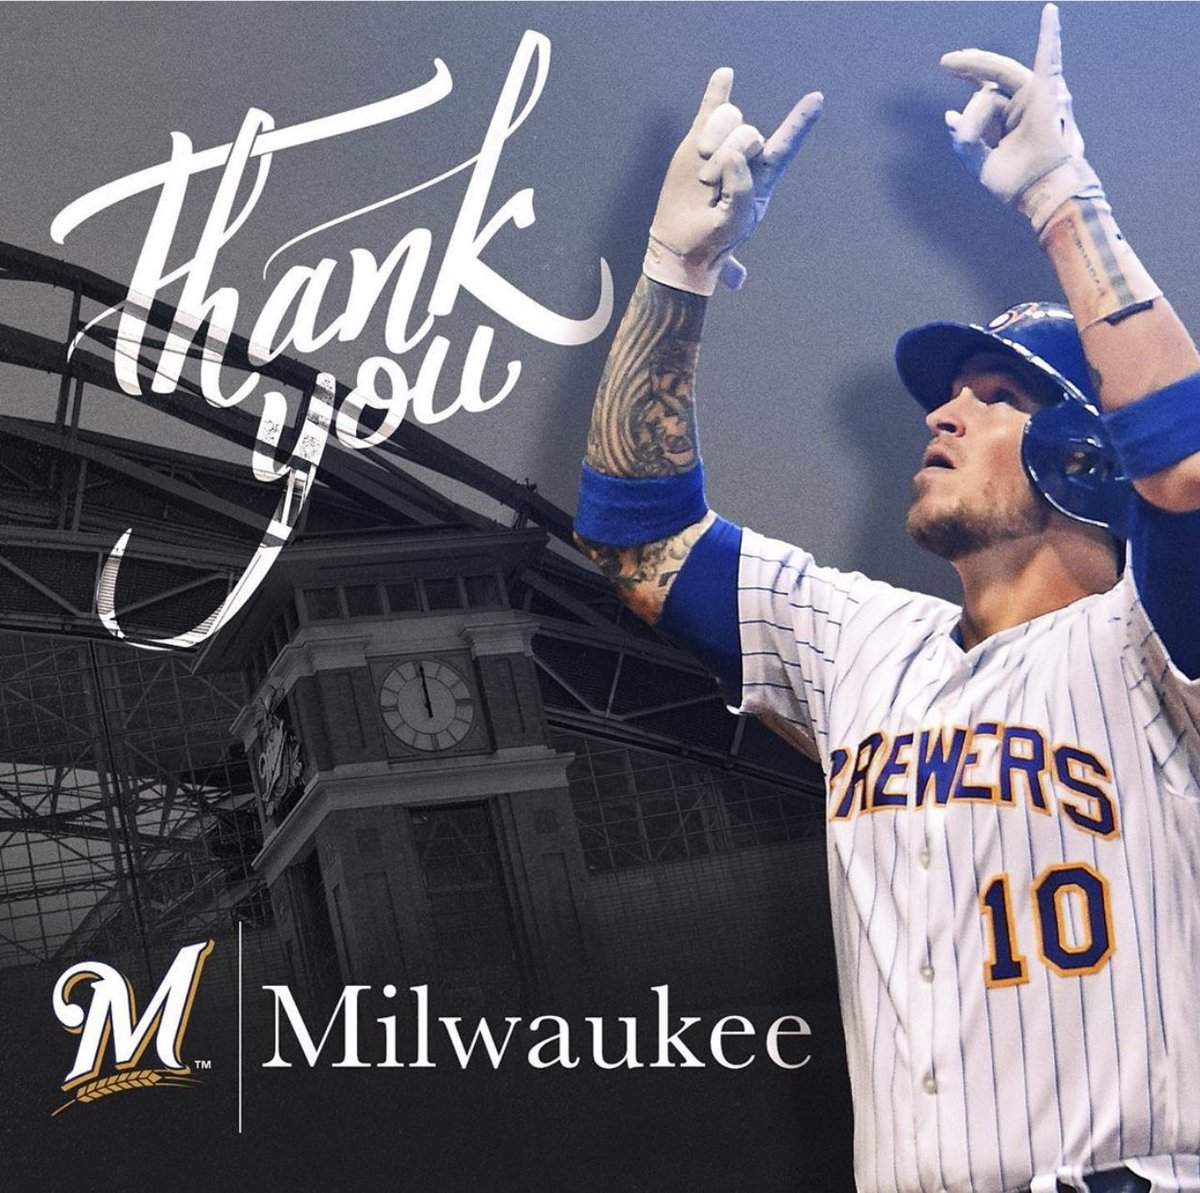 I wanted to thank the Milwaukee @brewers organization and the fans. You guys took my family and I in with open arms and made it a very special year. We are grateful for all the love you showed us. Thank you! 😈😈😈